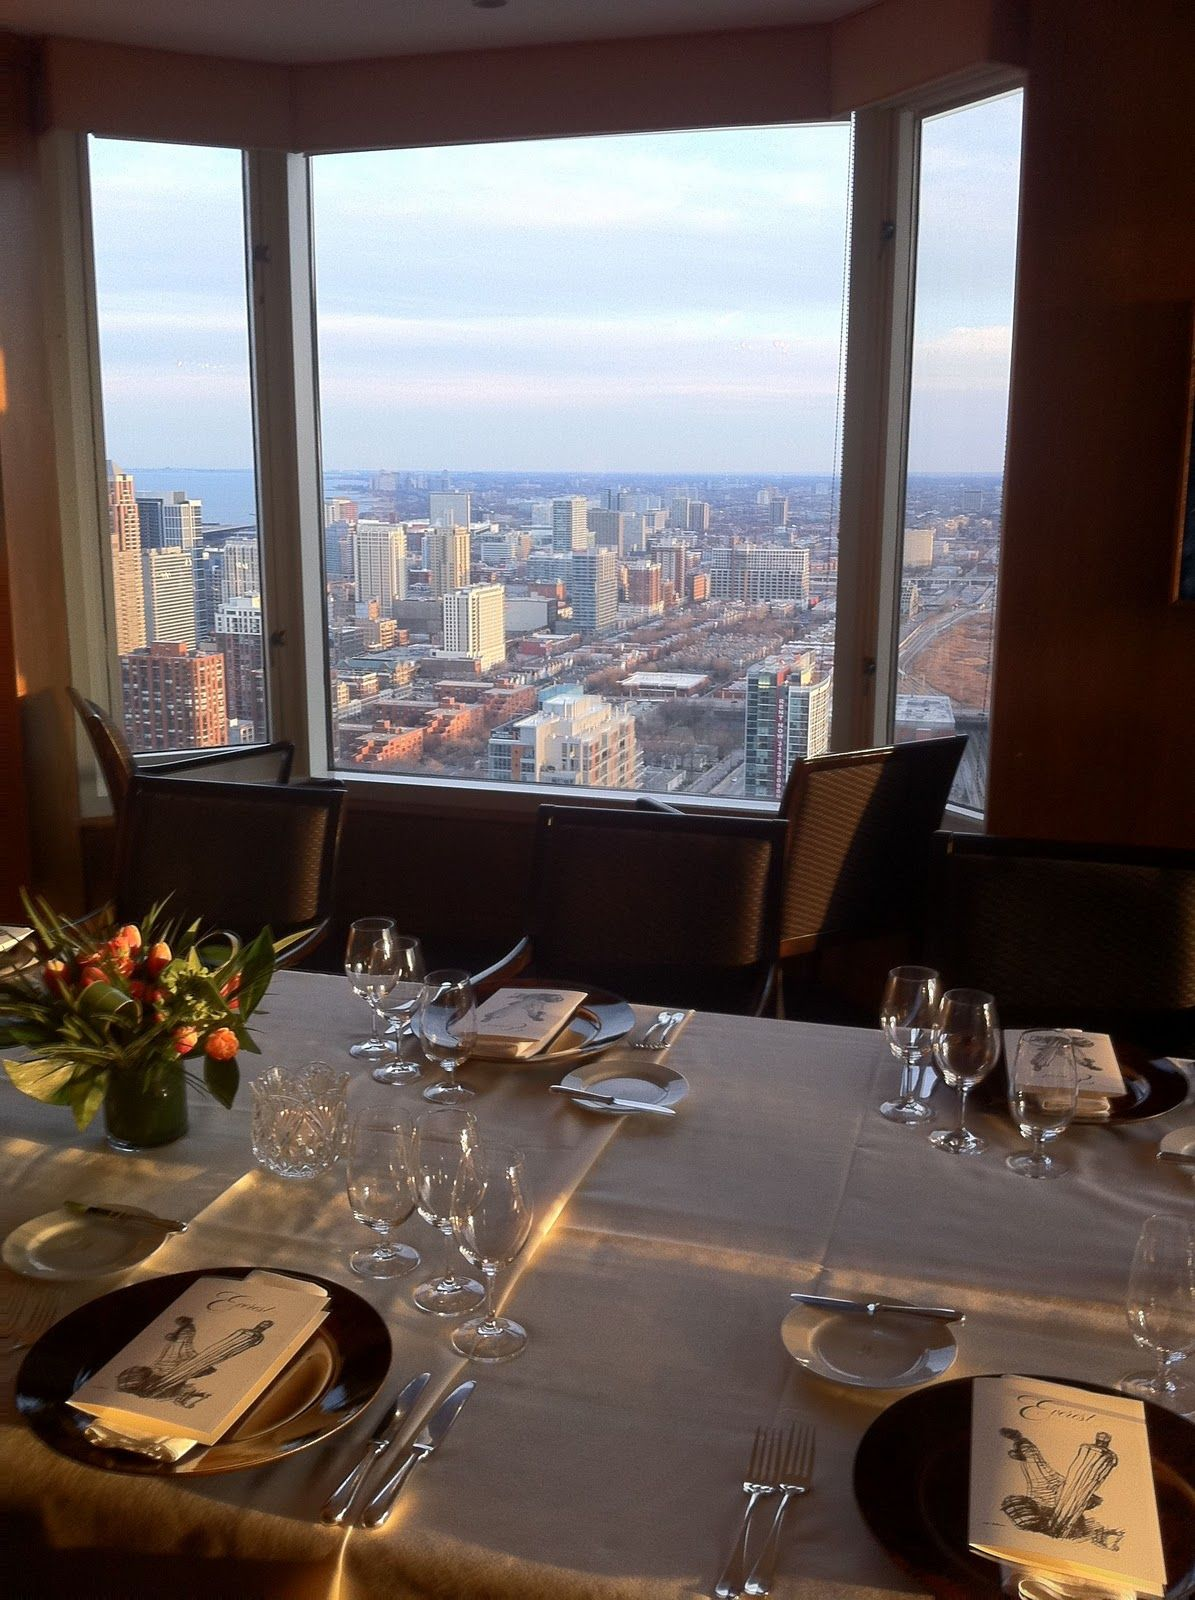 Everest Chicago Illinois Alsatian Influenced French Prix Fixe Menu One Of America S Premier Restaurants Located On The 40th Floor